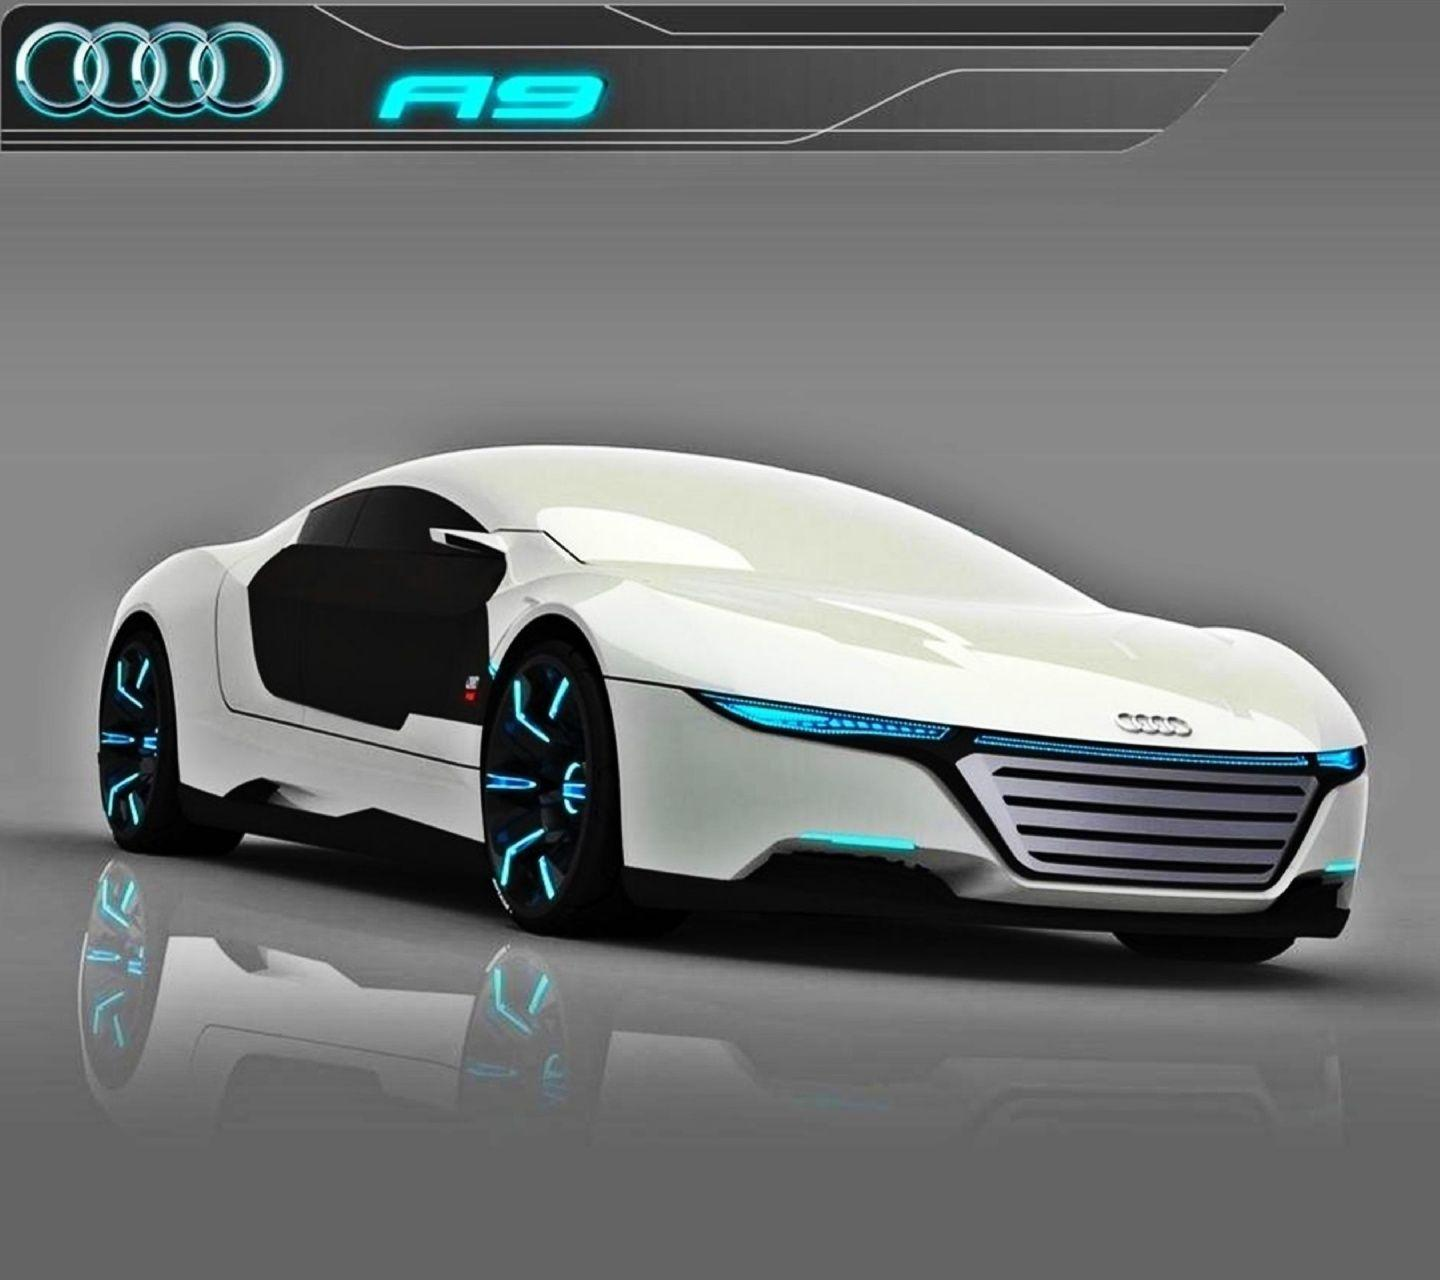 Download AUDI A9 1440 x 1280 Wallpapers